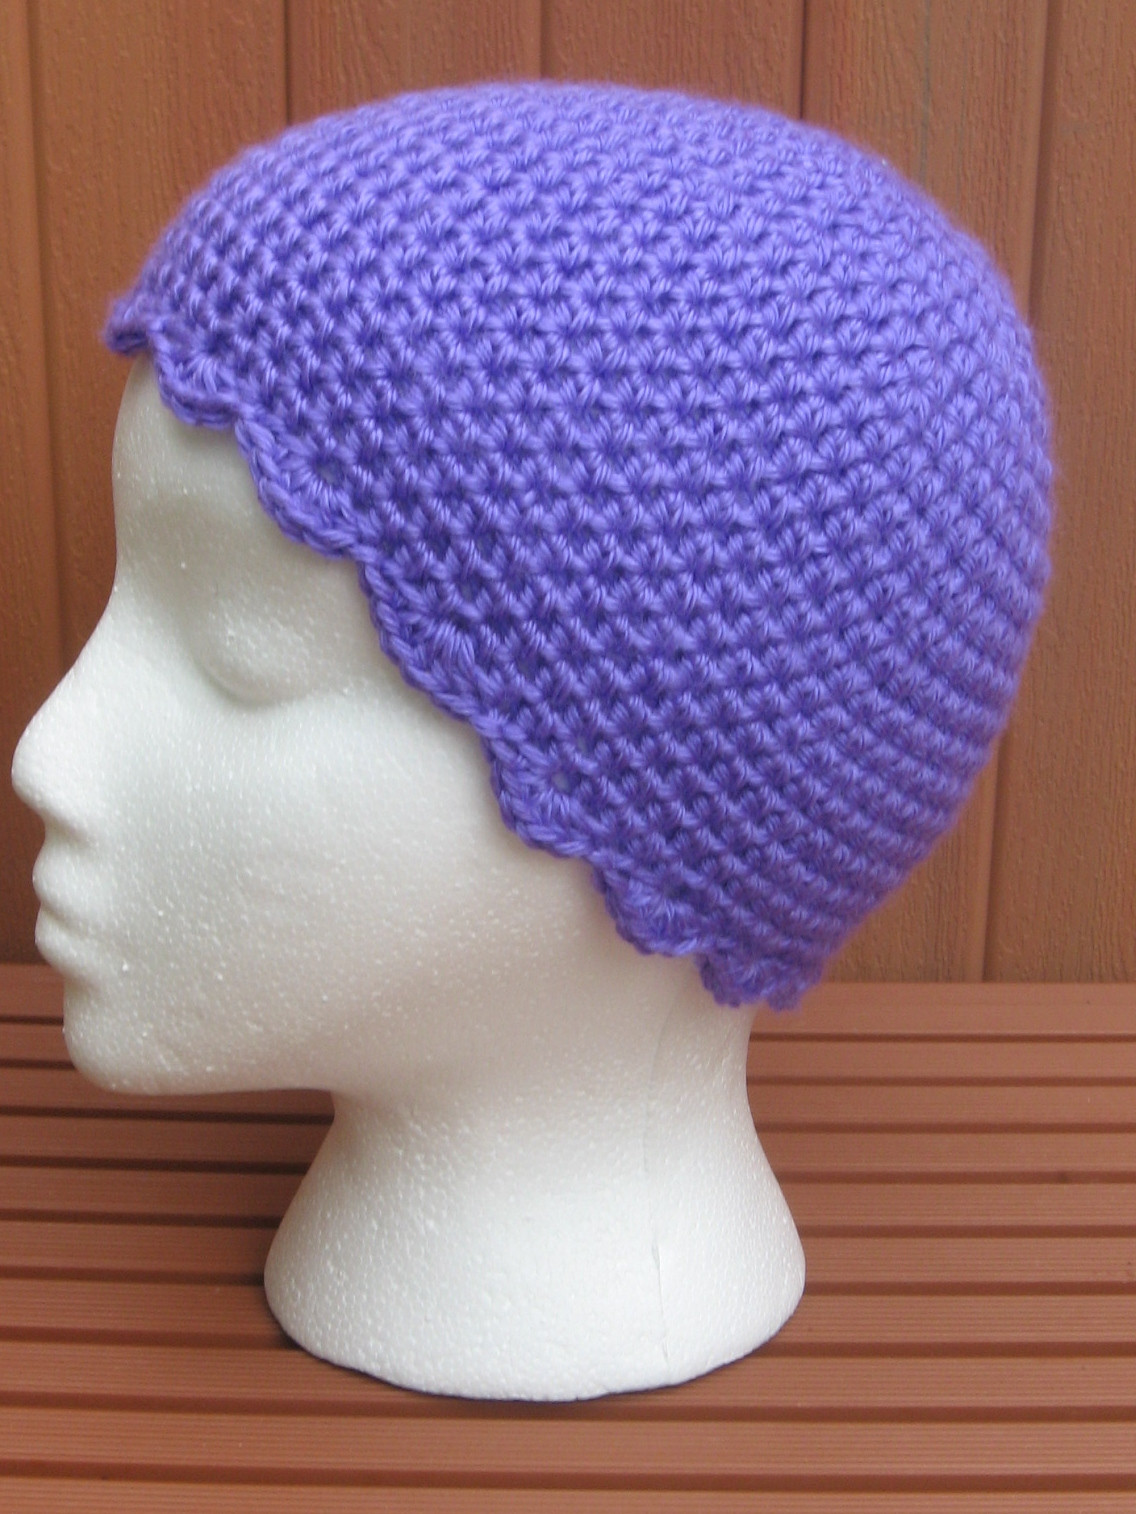 Chemo Cap Crochet Pattern New Crochet Projects Crochet Chemo Sleep Cap Of Brilliant 48 Pictures Chemo Cap Crochet Pattern